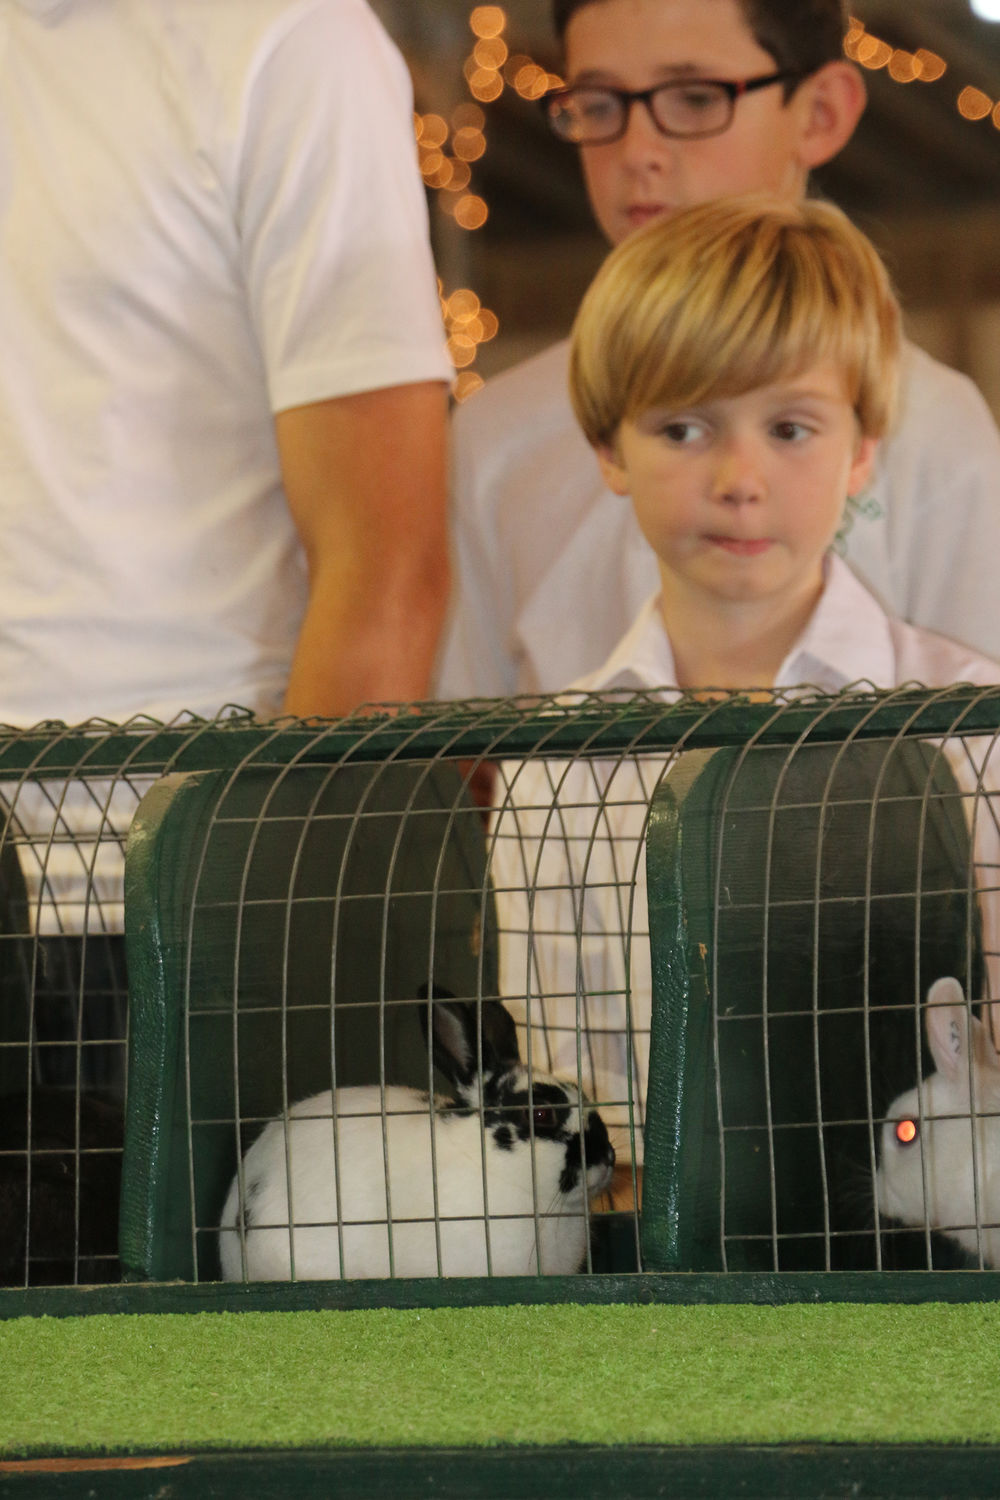 Family takes to rabbits to participate at fair